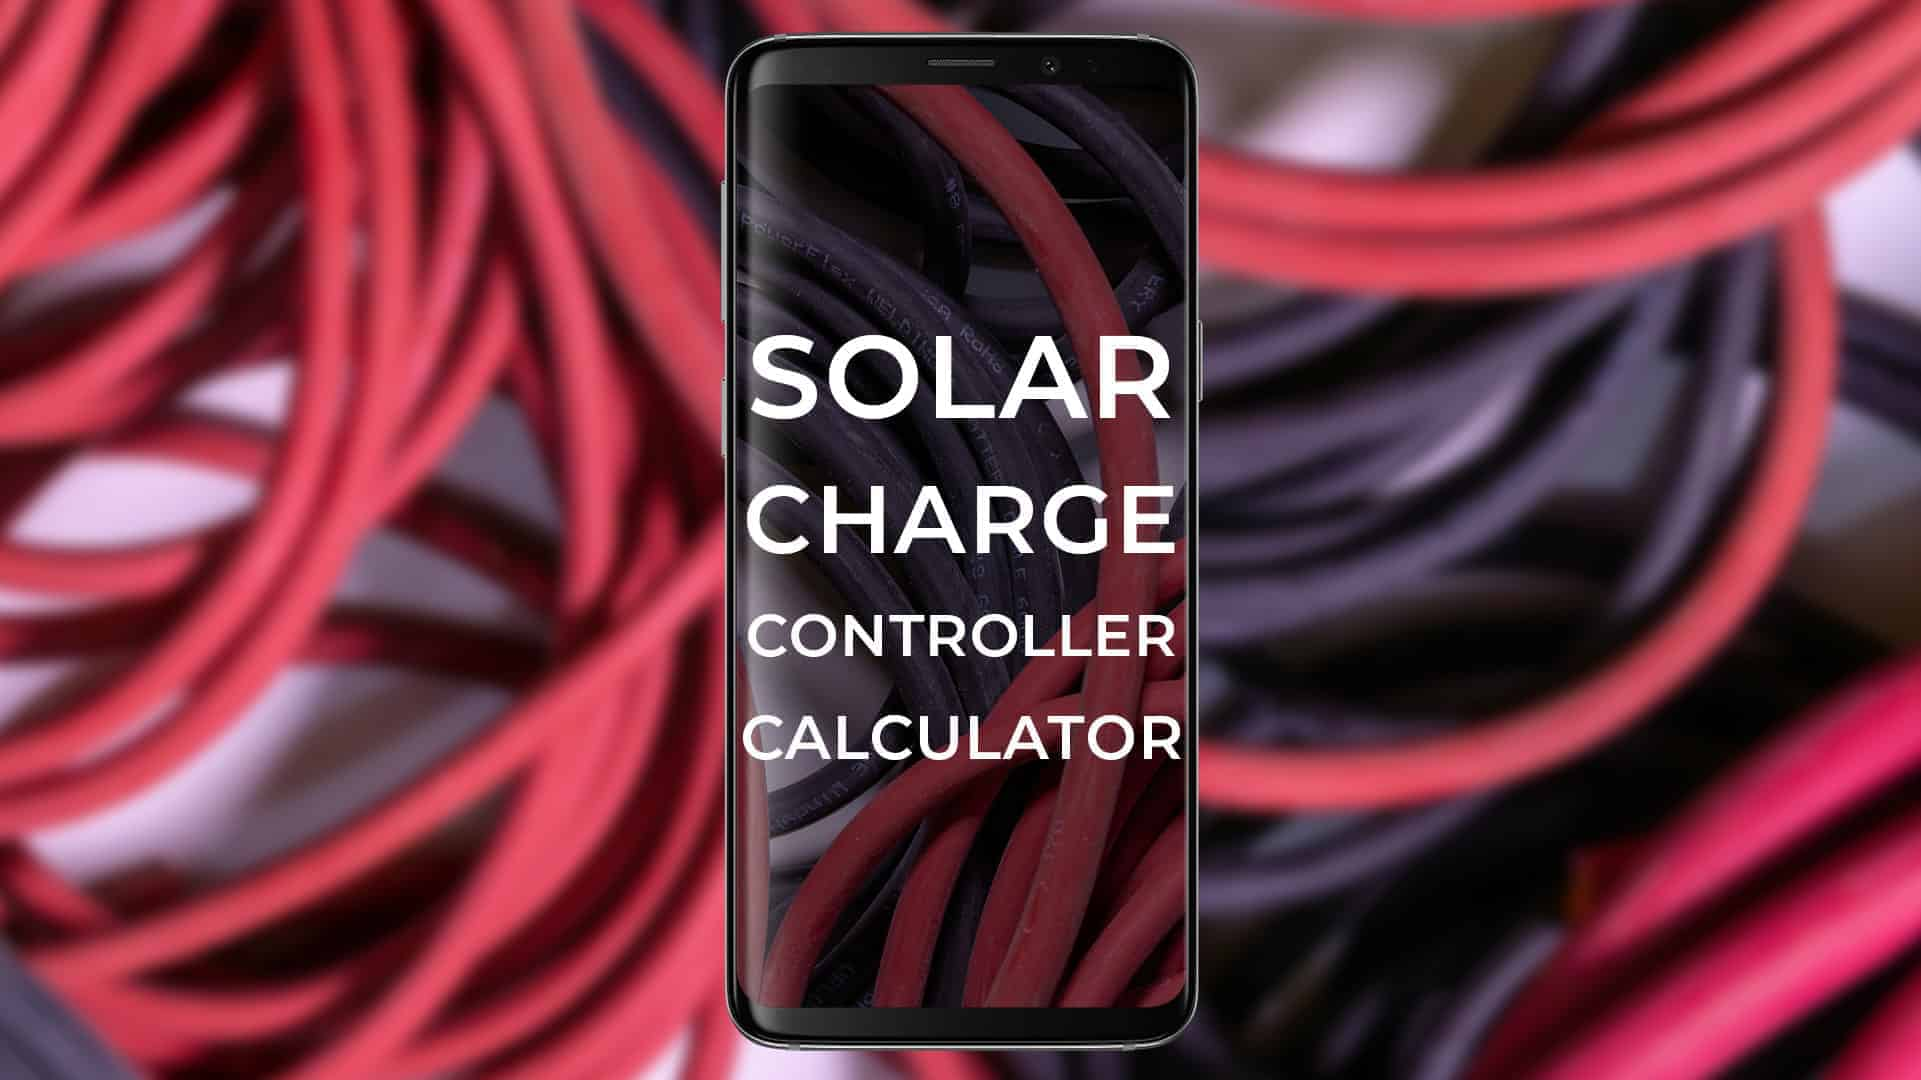 Solar Charge Controller Calculator